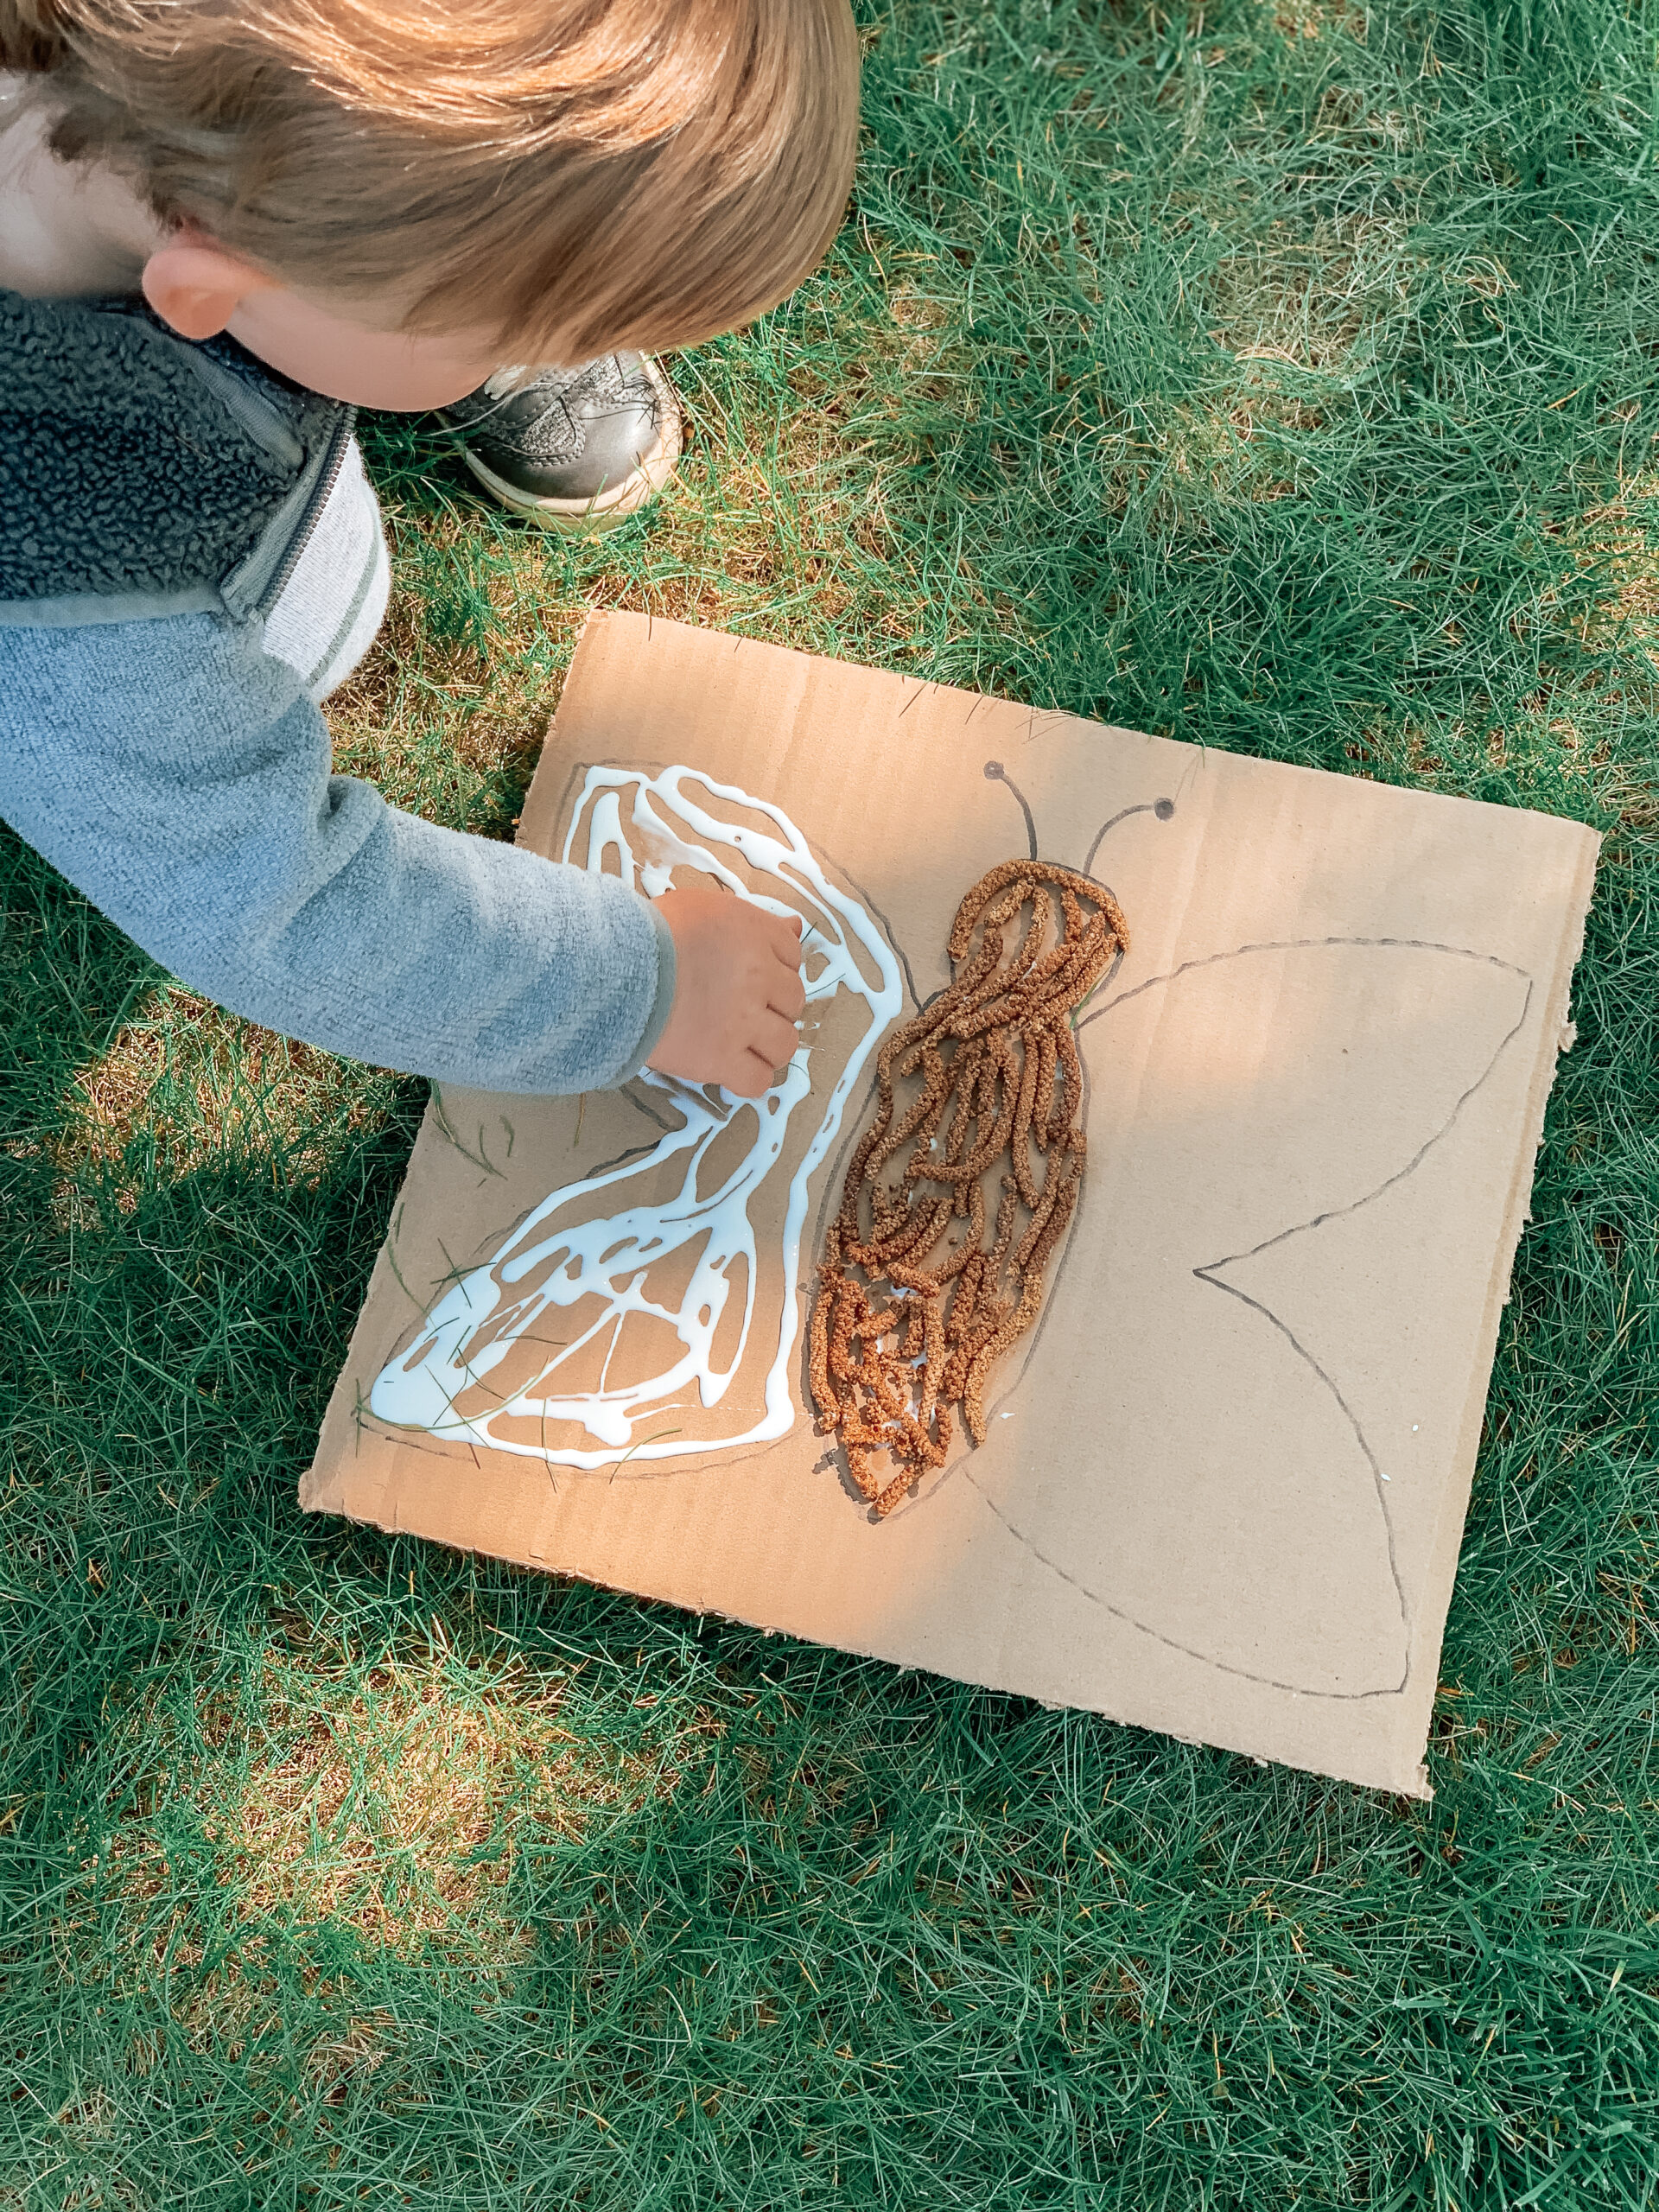 child making art with nature and repurposed cardboard